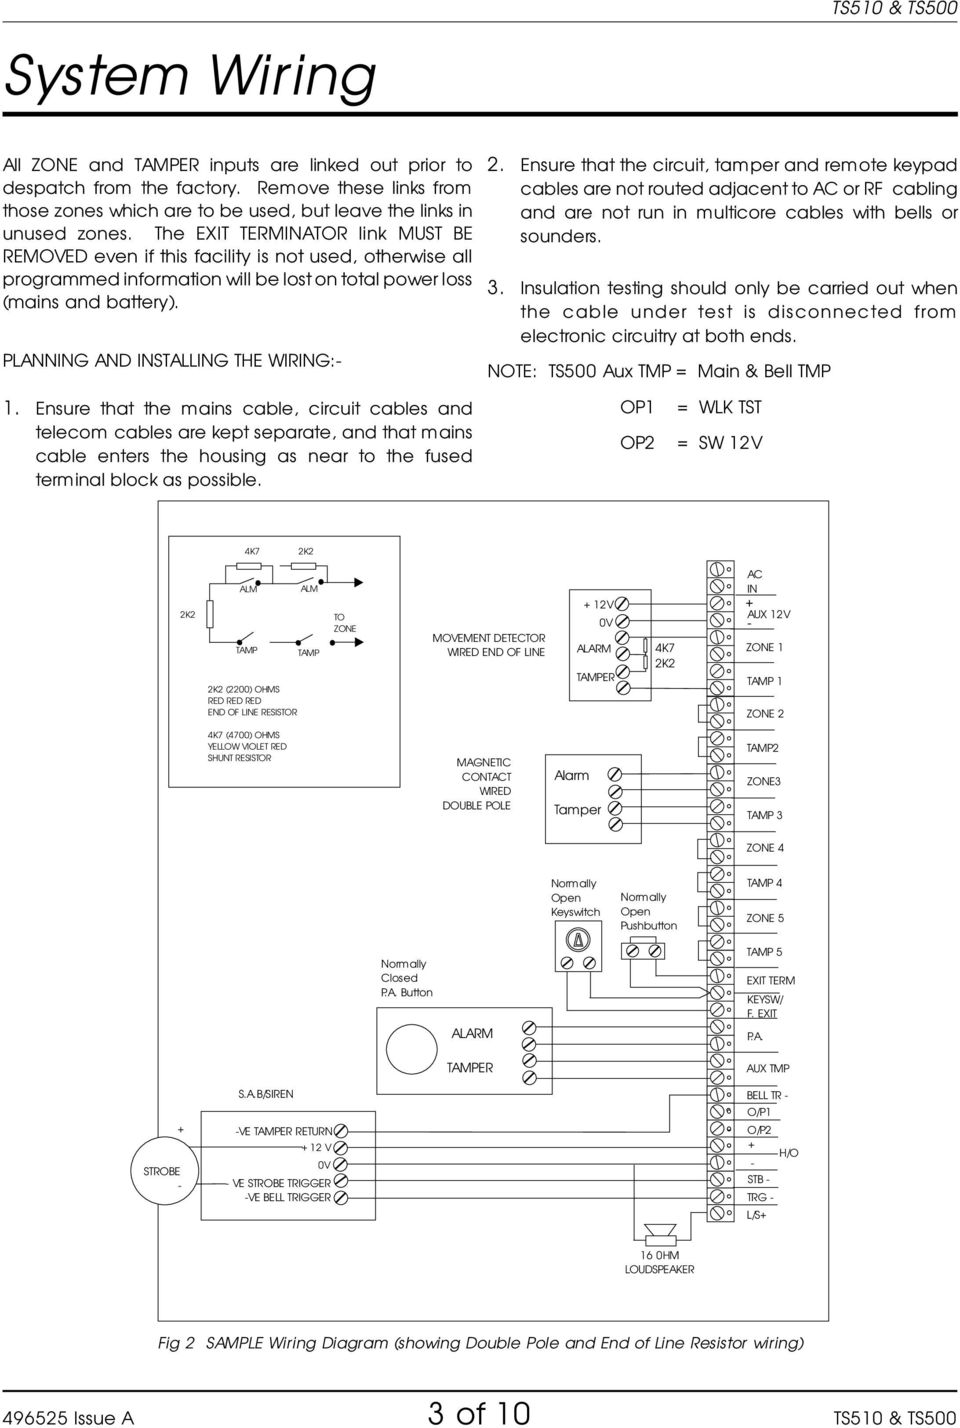 Ts510 ts500 installation user guide compatible equipment pdf planning and installing the wiring 1 asfbconference2016 Image collections